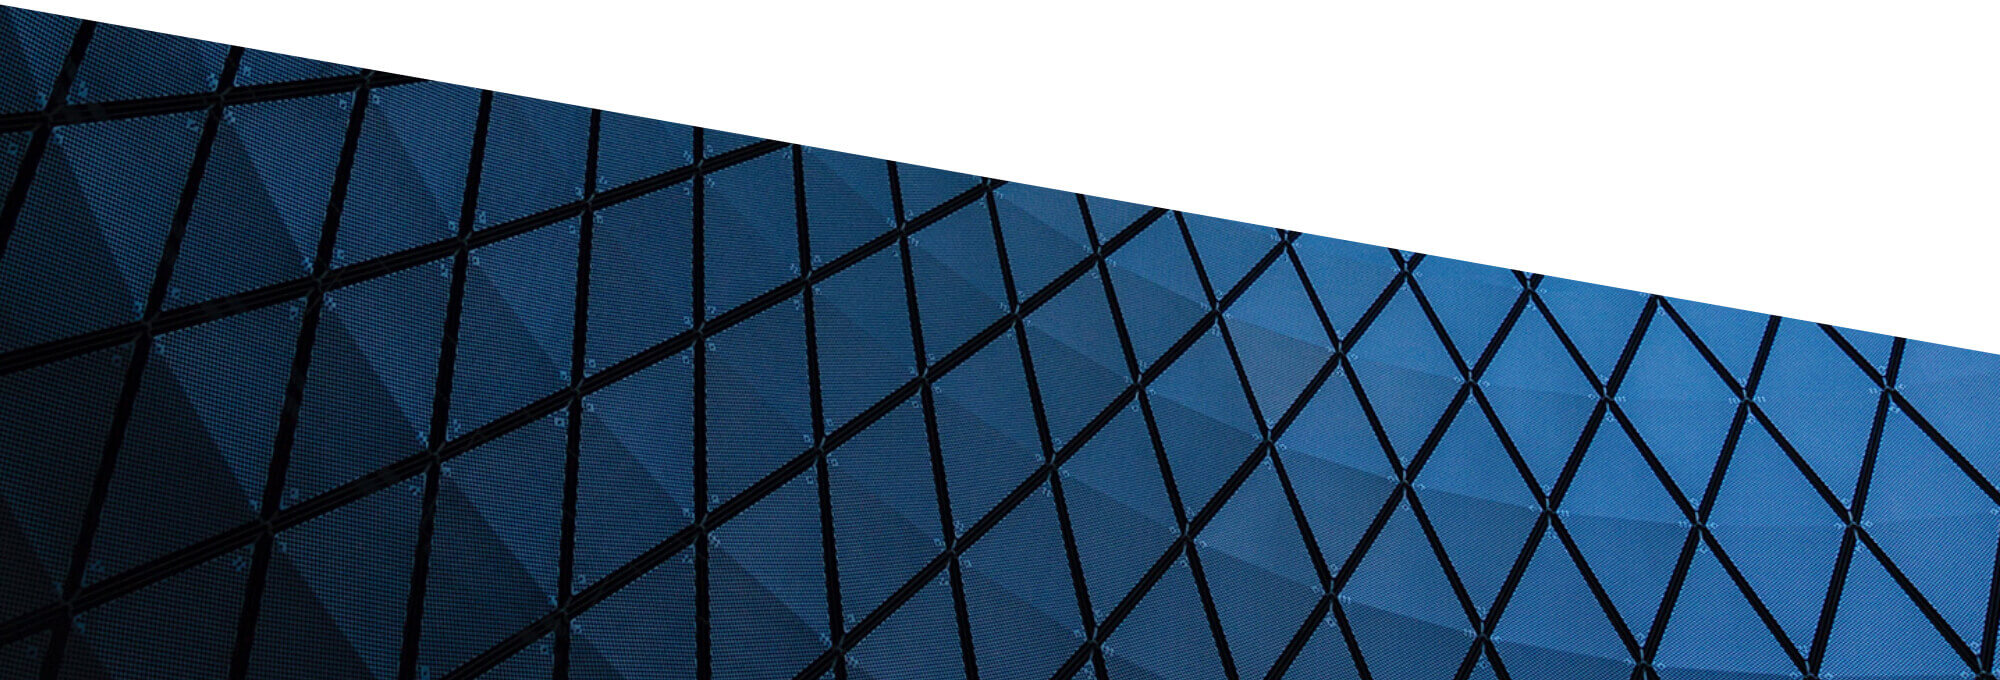 Abstract architectural details of a grid of windows